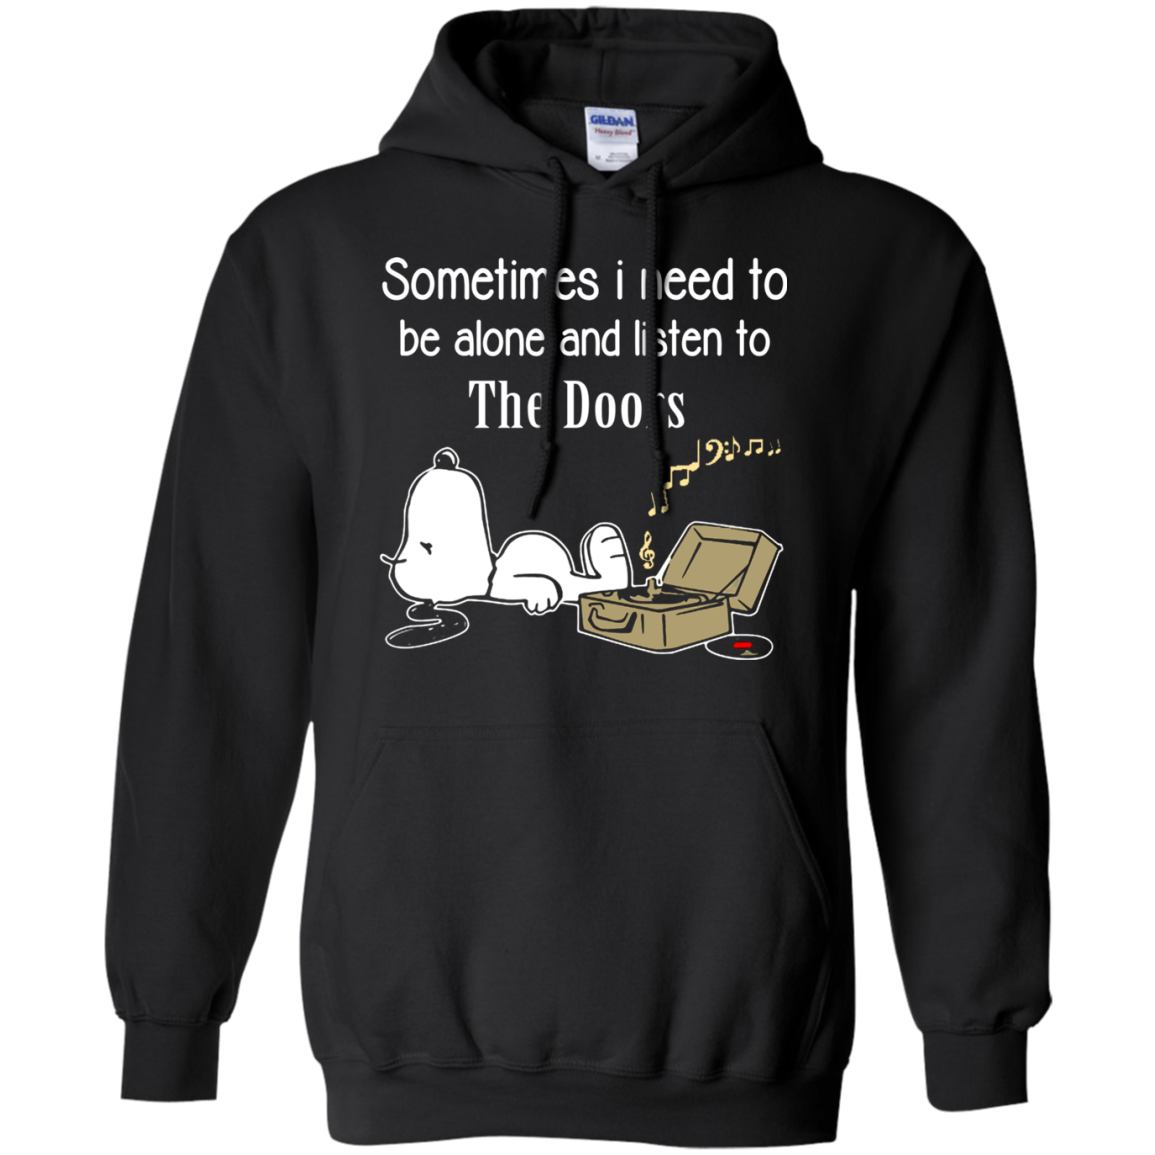 The Doors Snoopy T shirts Sometimes Need To Be Alone And Listen To The Doors Hoodies  sc 1 st  Gear Phoenix & The Doors Snoopy T shirts Sometimes Need To Be Alone And Listen To ...